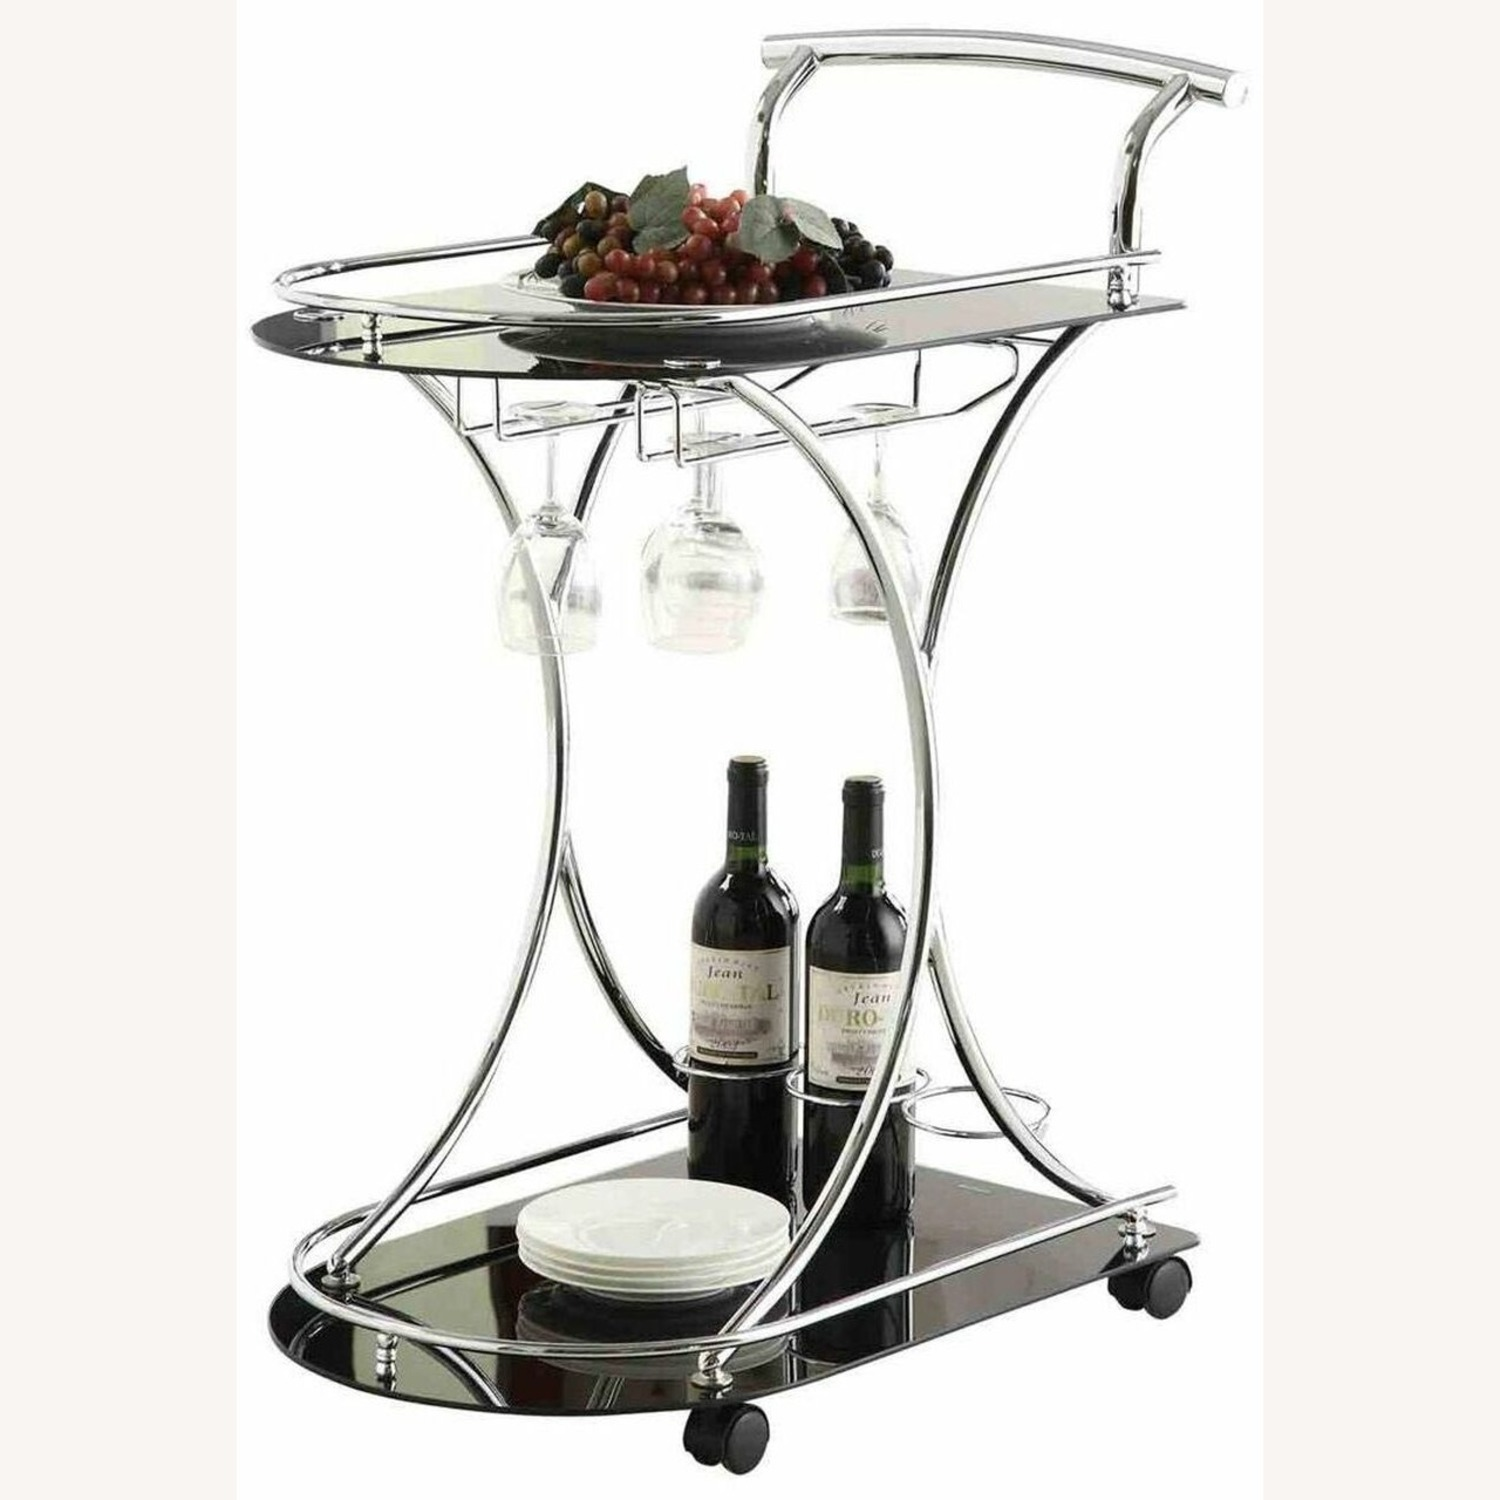 Serving Cart In Chrome Metal Finish W/ Wine Rack - image-1